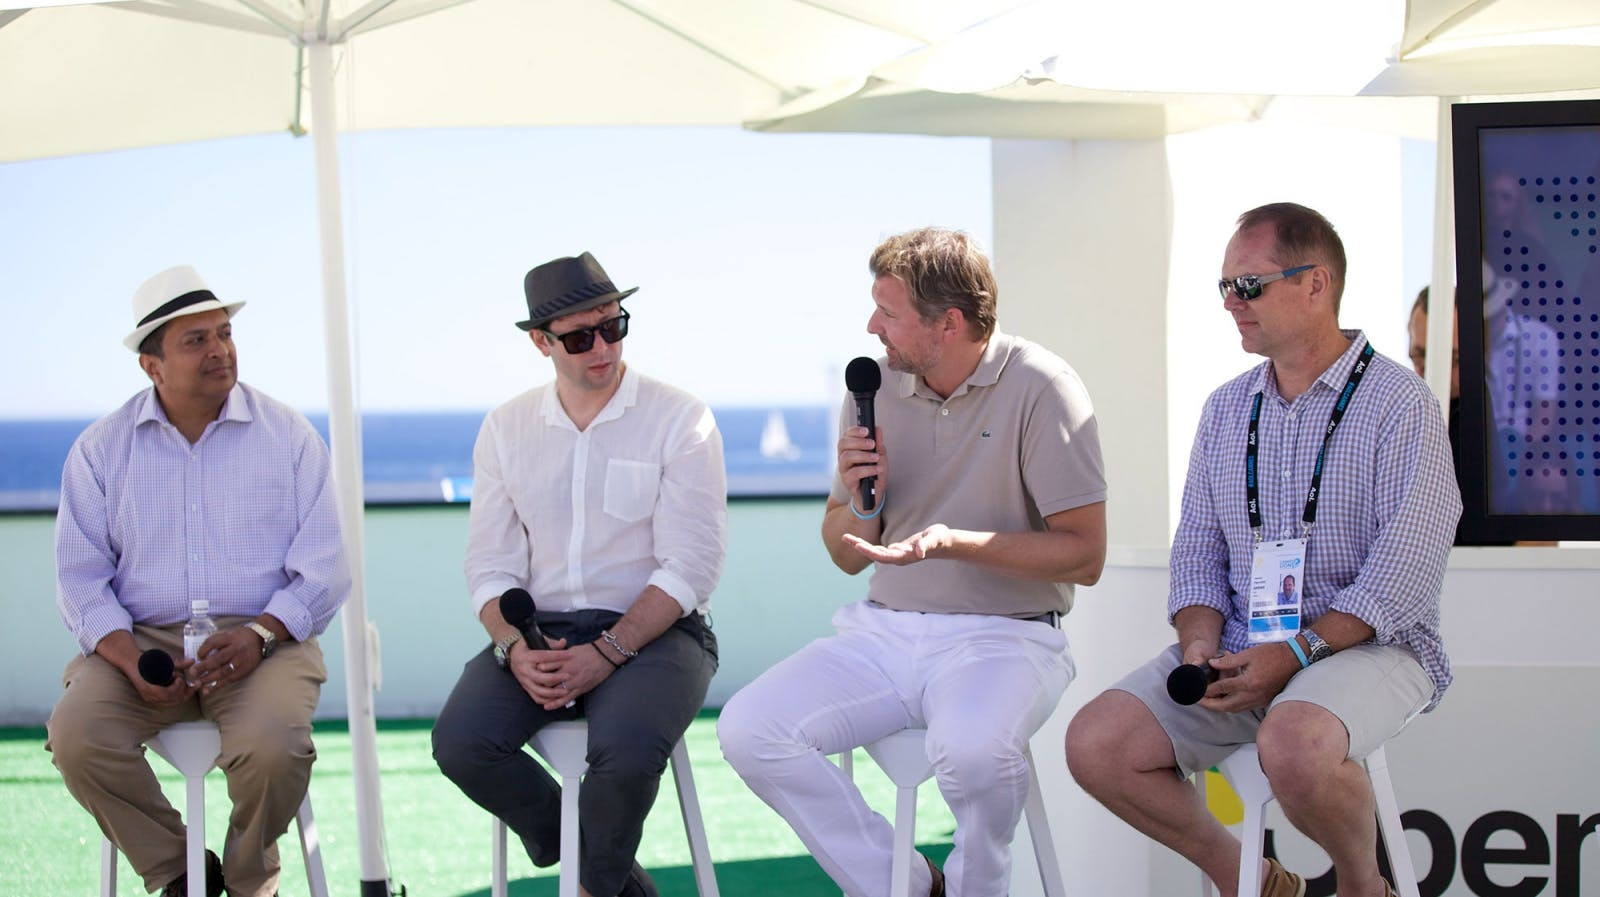 OX Blog Cannes HeaderBidding410 - OpenX at Cannes: Discussions on Programmatic Guaranteed, Speed & the Future of Advertising